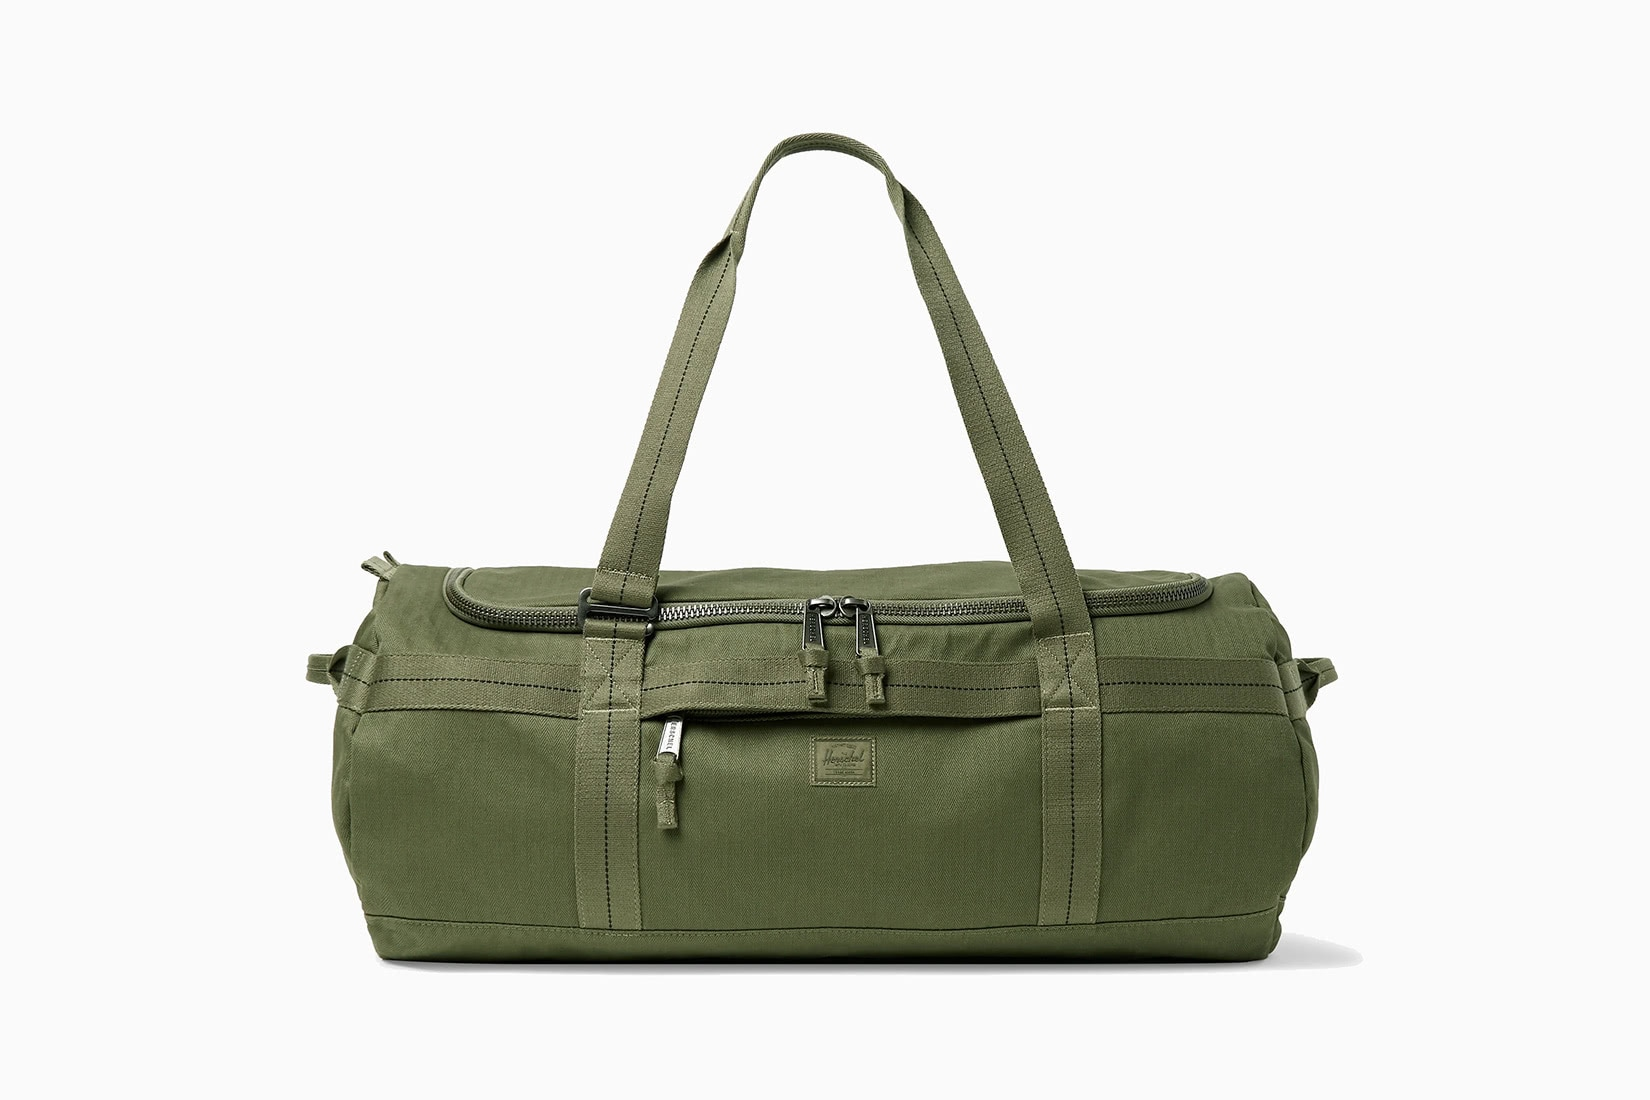 best men gym bag high-end herschel sutton duffle - Luxe Digital